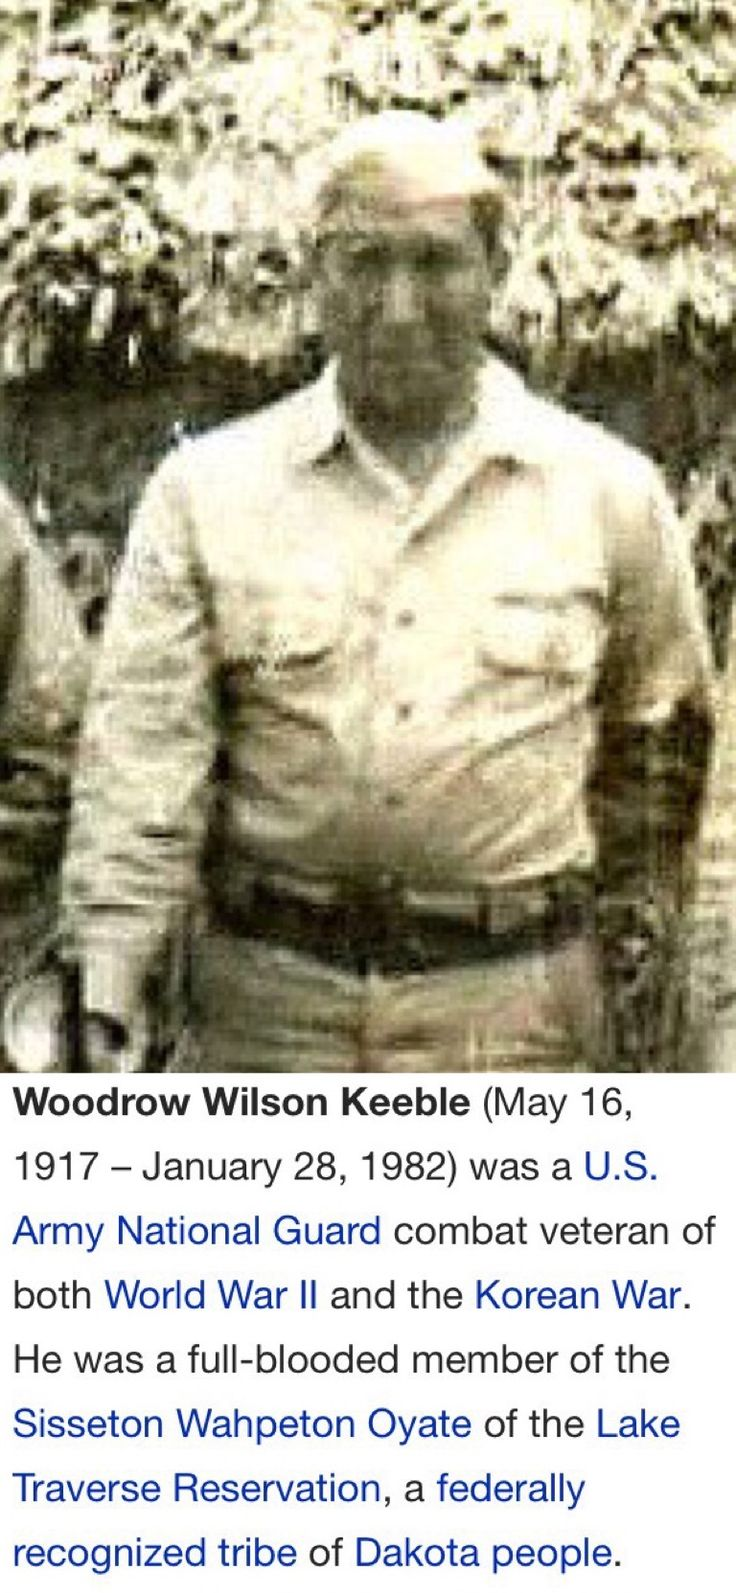 Woodrow Wilson Keeble was awarded with a Presidential Unit Citation during the battle of Guadalcanal during WWII. He went on to fight in the Korean Conflict where he was awarded the Silver Star, and in 2008,  was posthumously awarded the Medal of Honor.